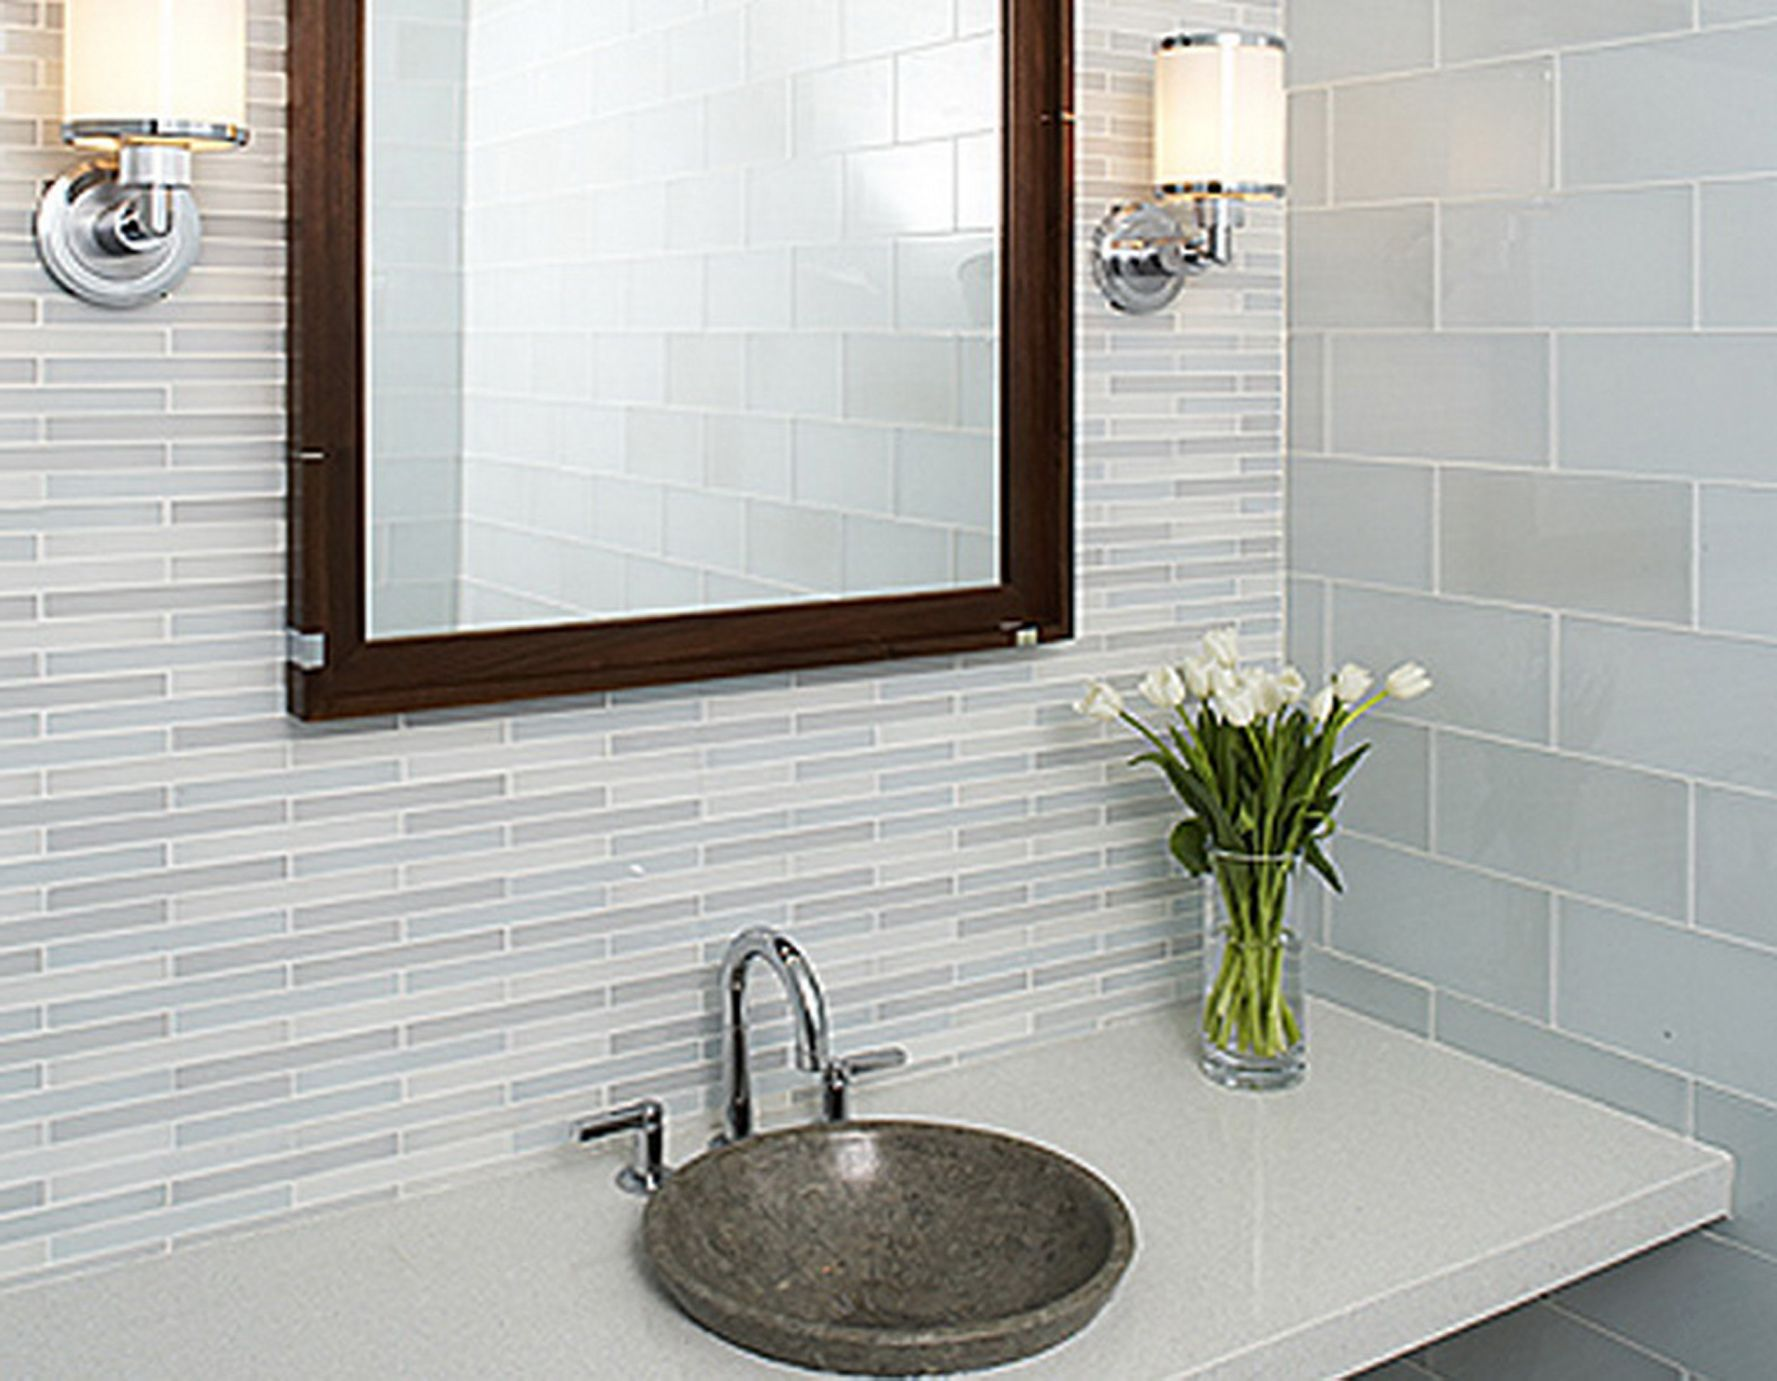 Dazzling Mirrored Backsplash Tiles For Glorious Kitchen Looks: Appealing  Small Modern Bathroom Mirrored Backsplash Tiles With Flower Vase And Wall  Sconces ...